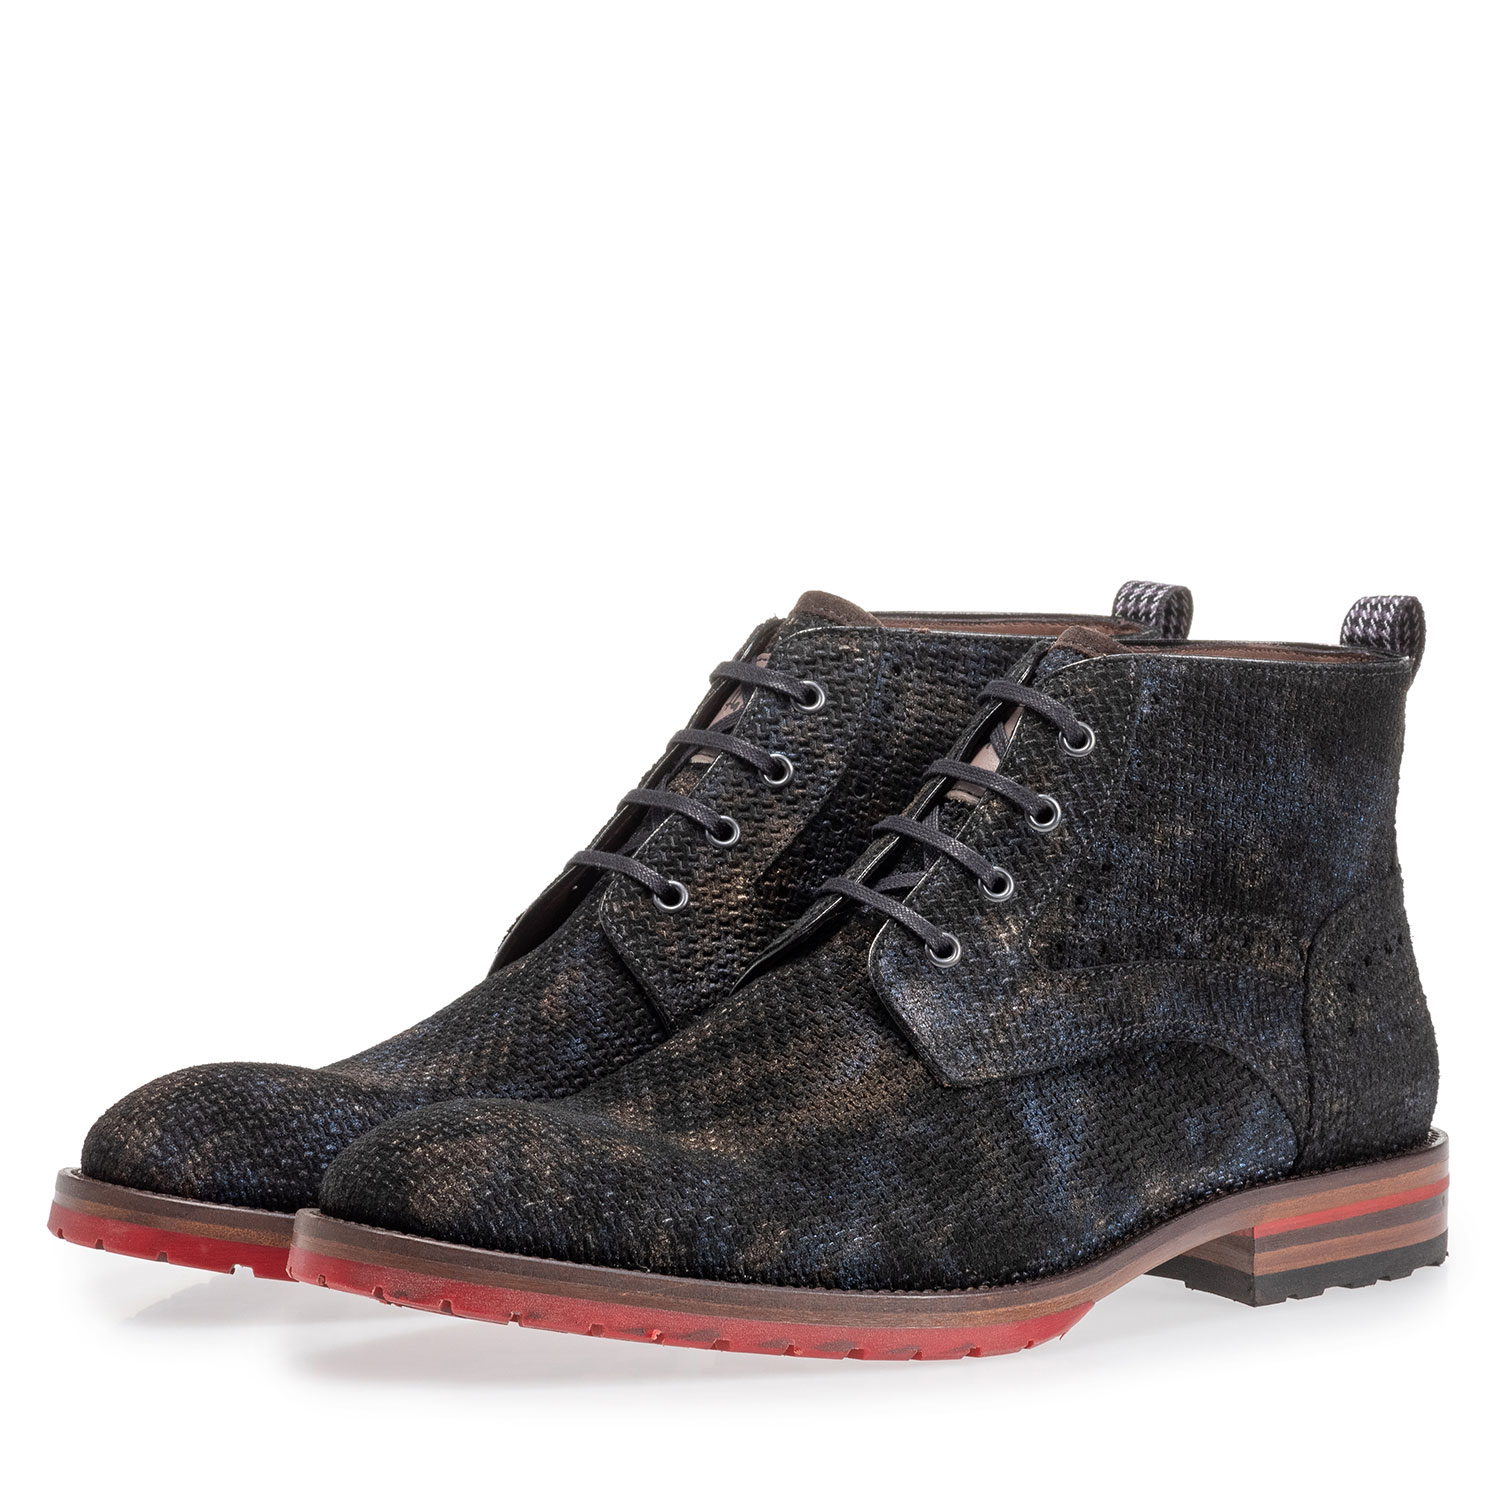 10317/29 - Lace boot bronze with print